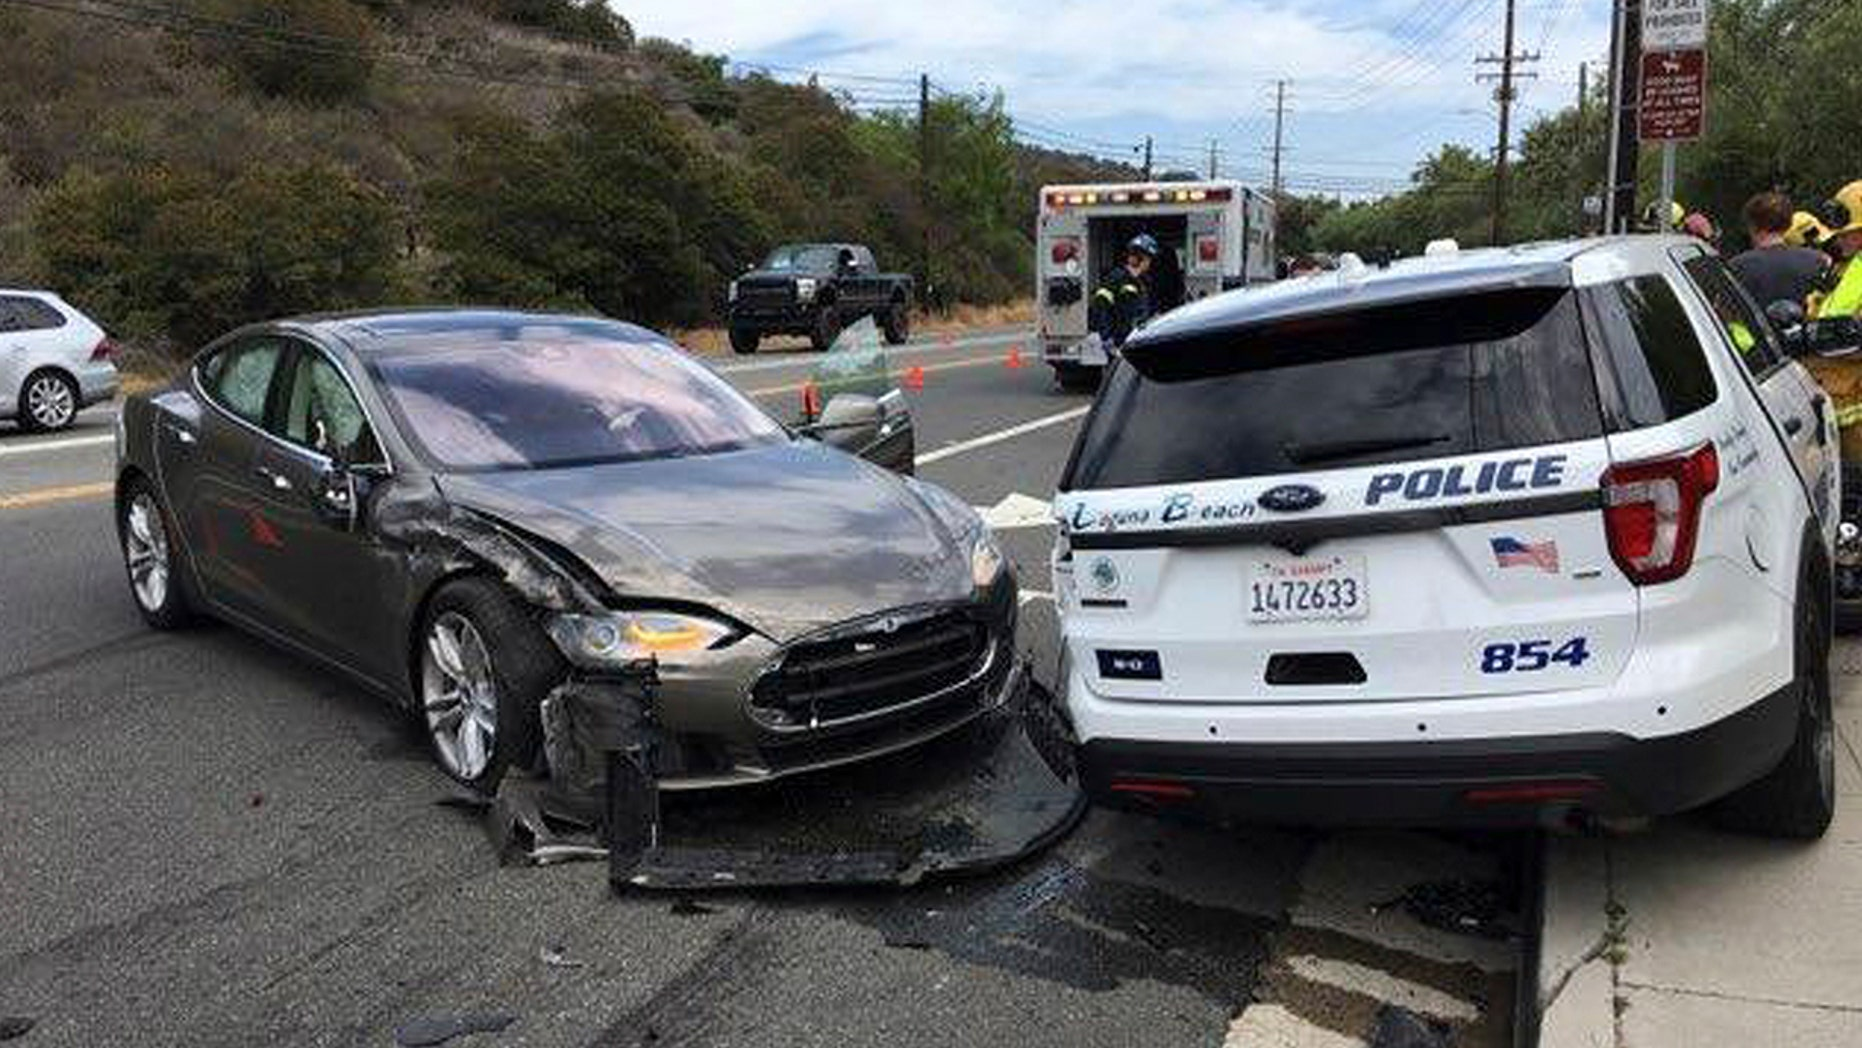 No officers were in the cruiser during the crash Tuesday in Laguna Beach.